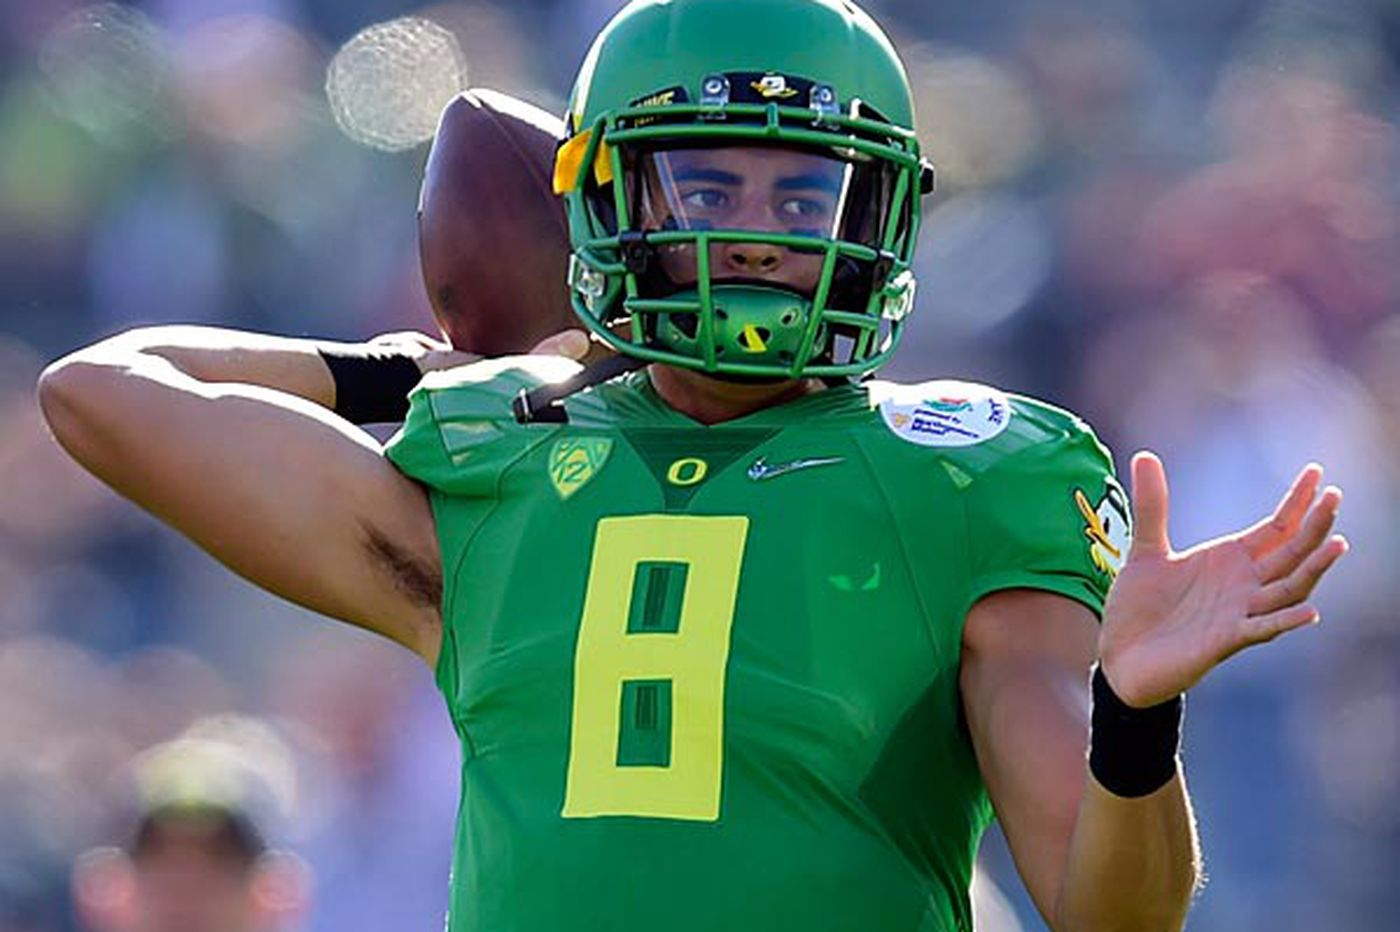 Maybe Chip Kelly is still chasing Mariota after all